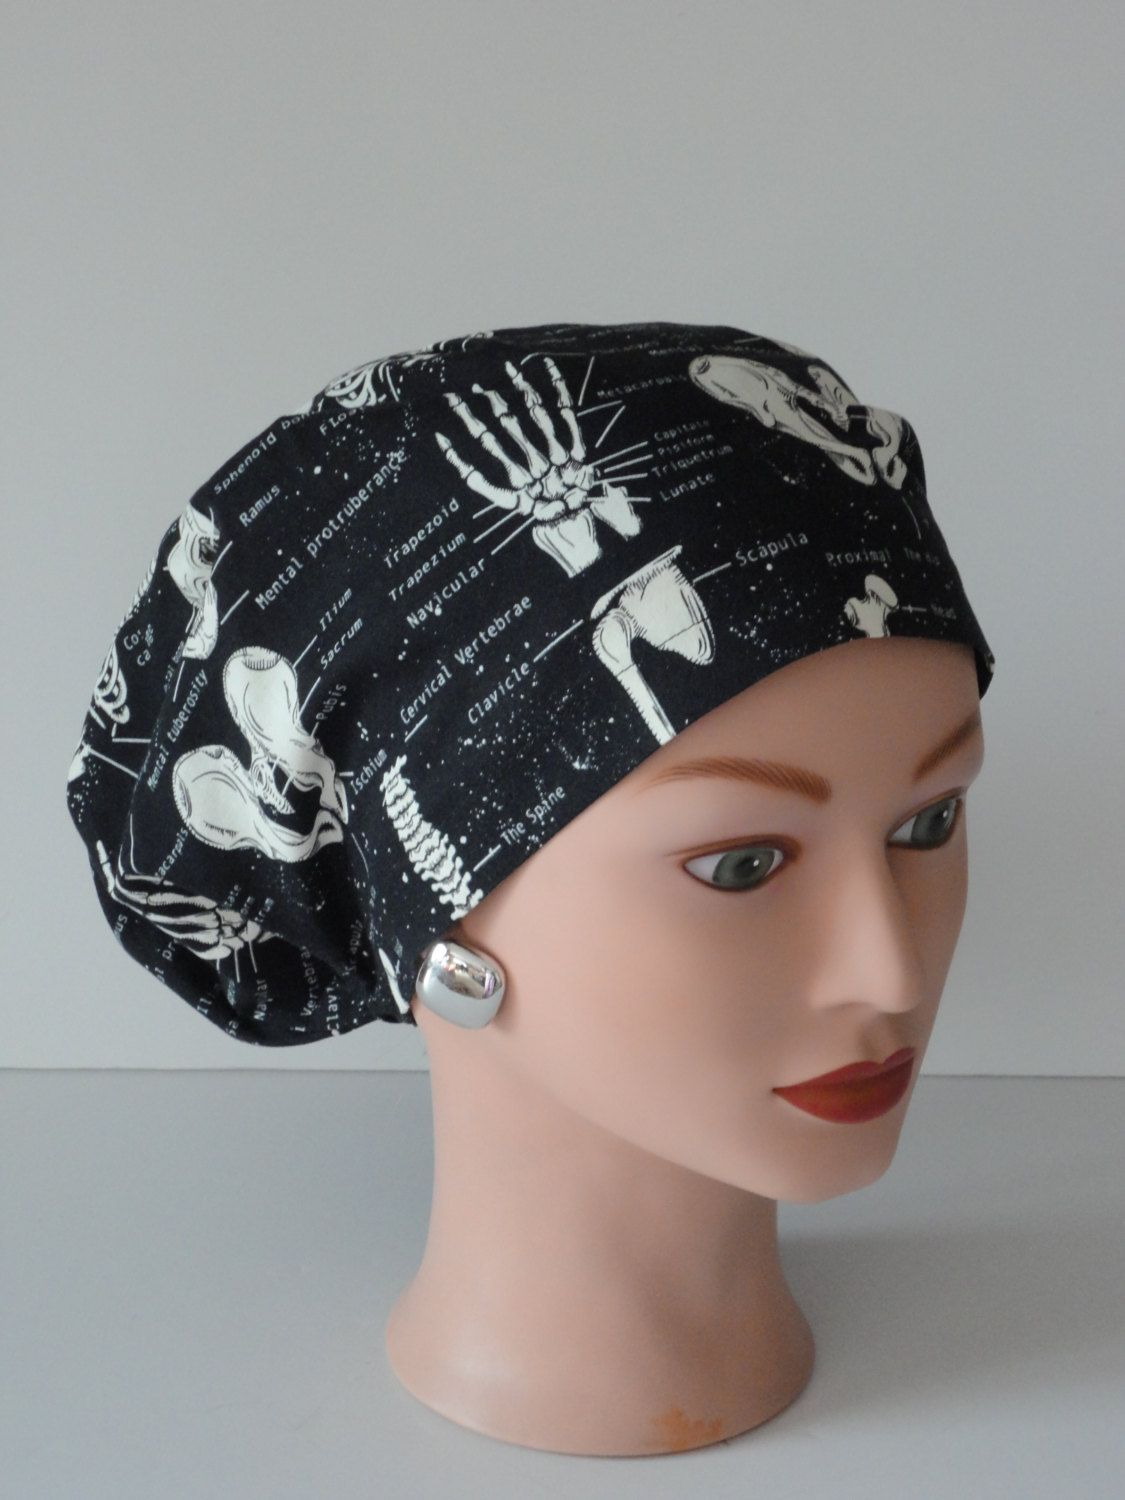 d2d2570727c Surgical Scrub Hat...Glow in the Dark Bones...X-Ray Tech/Orthopedics/Scrub  Hats for Women by TwoSew on Etsy